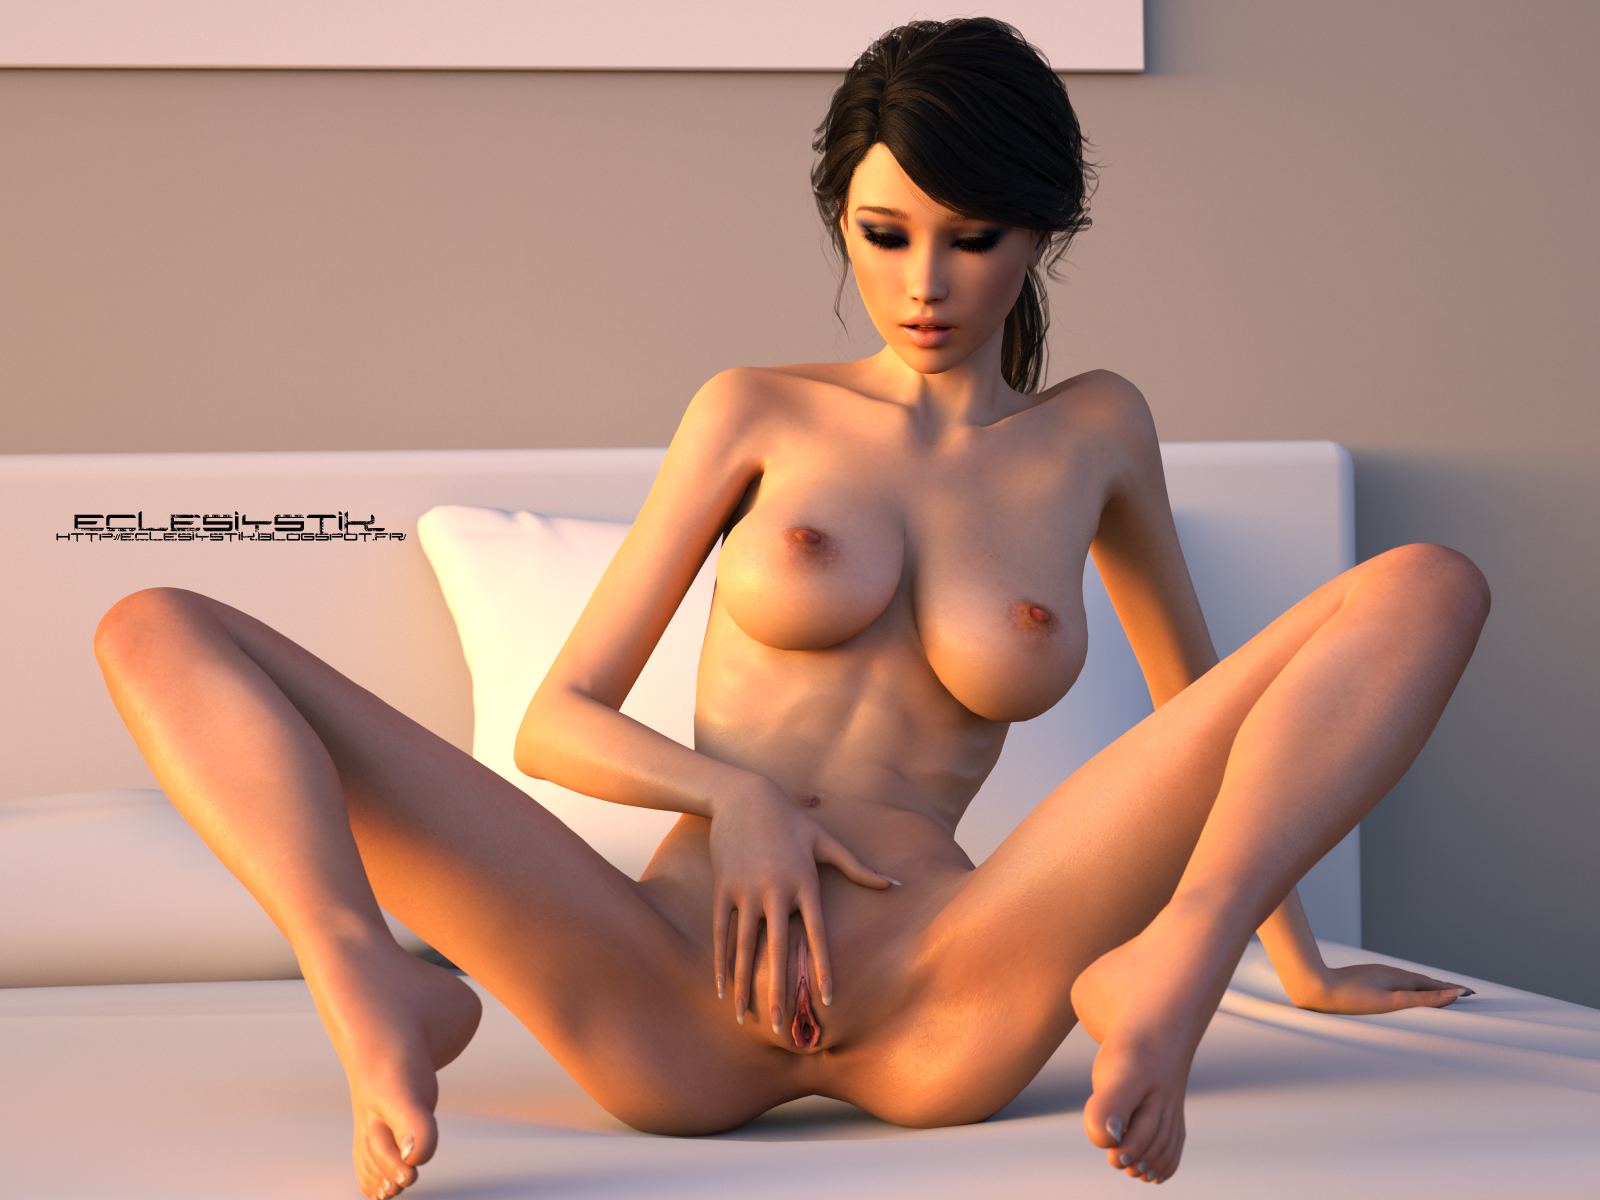 Midevil nude girls wallpaper sex streaming